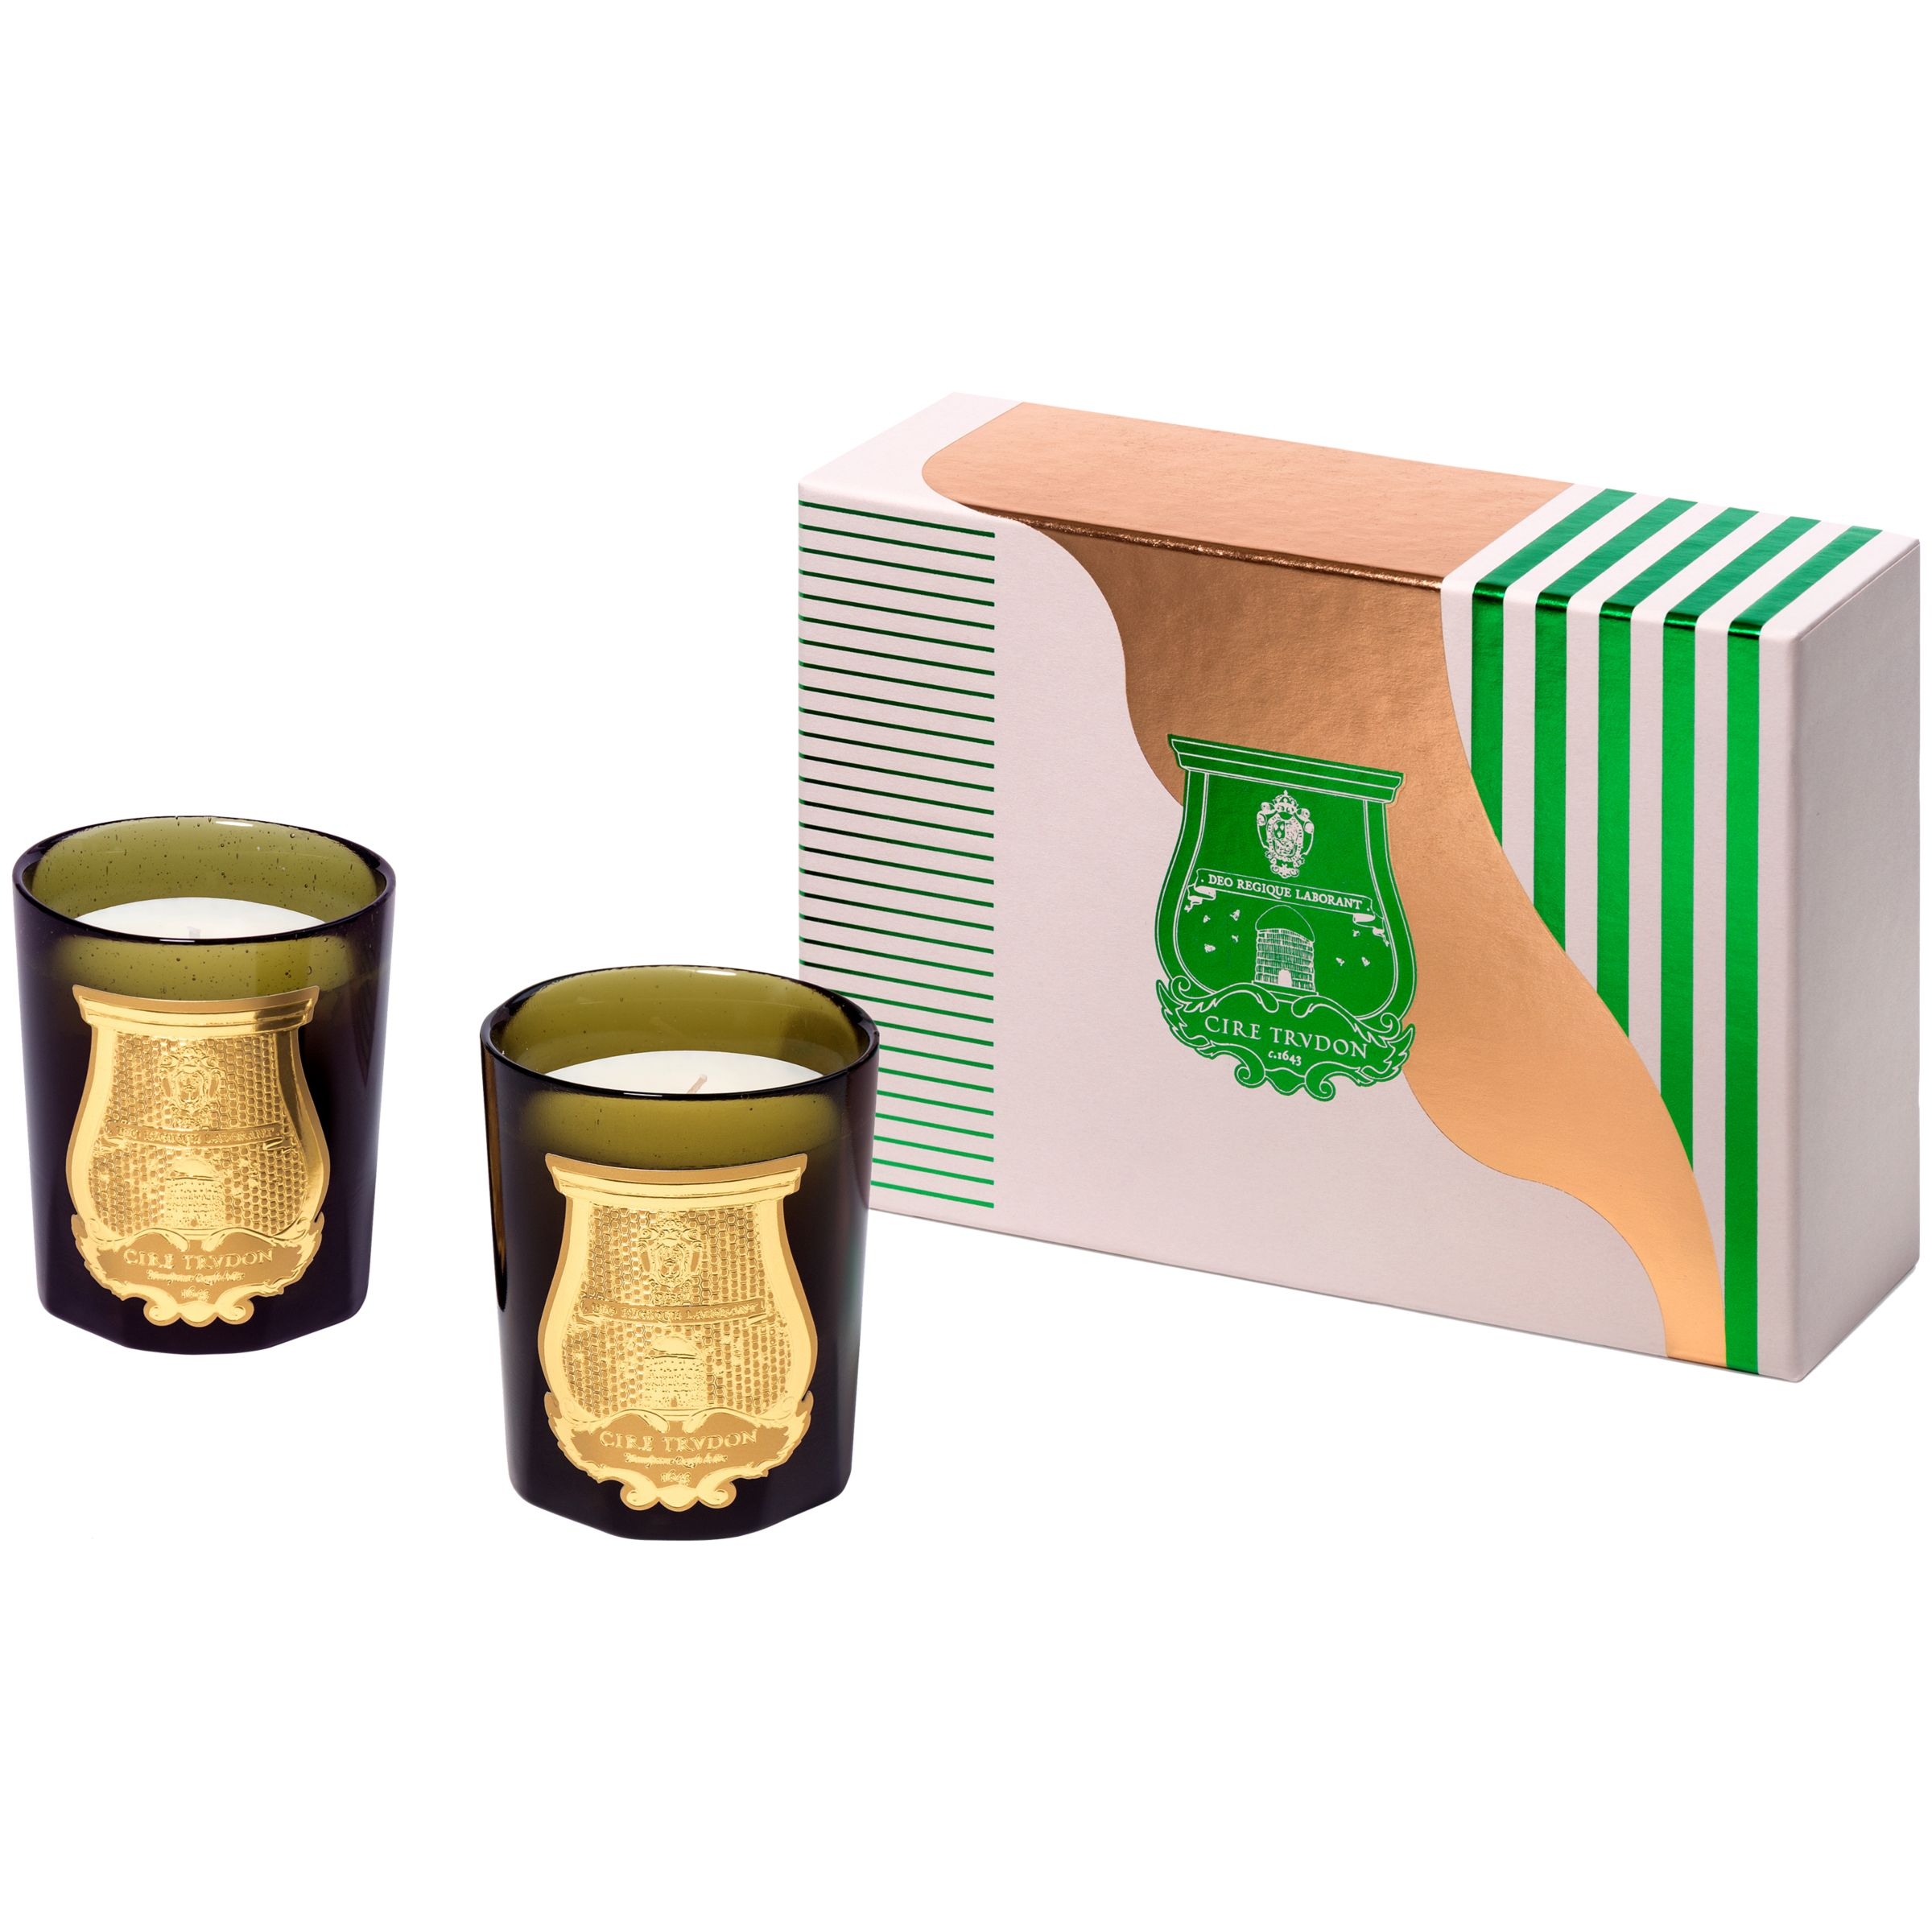 Cire Trudon Cire Trudon Duo Odeurs Imperiales Scented Candle, 375g